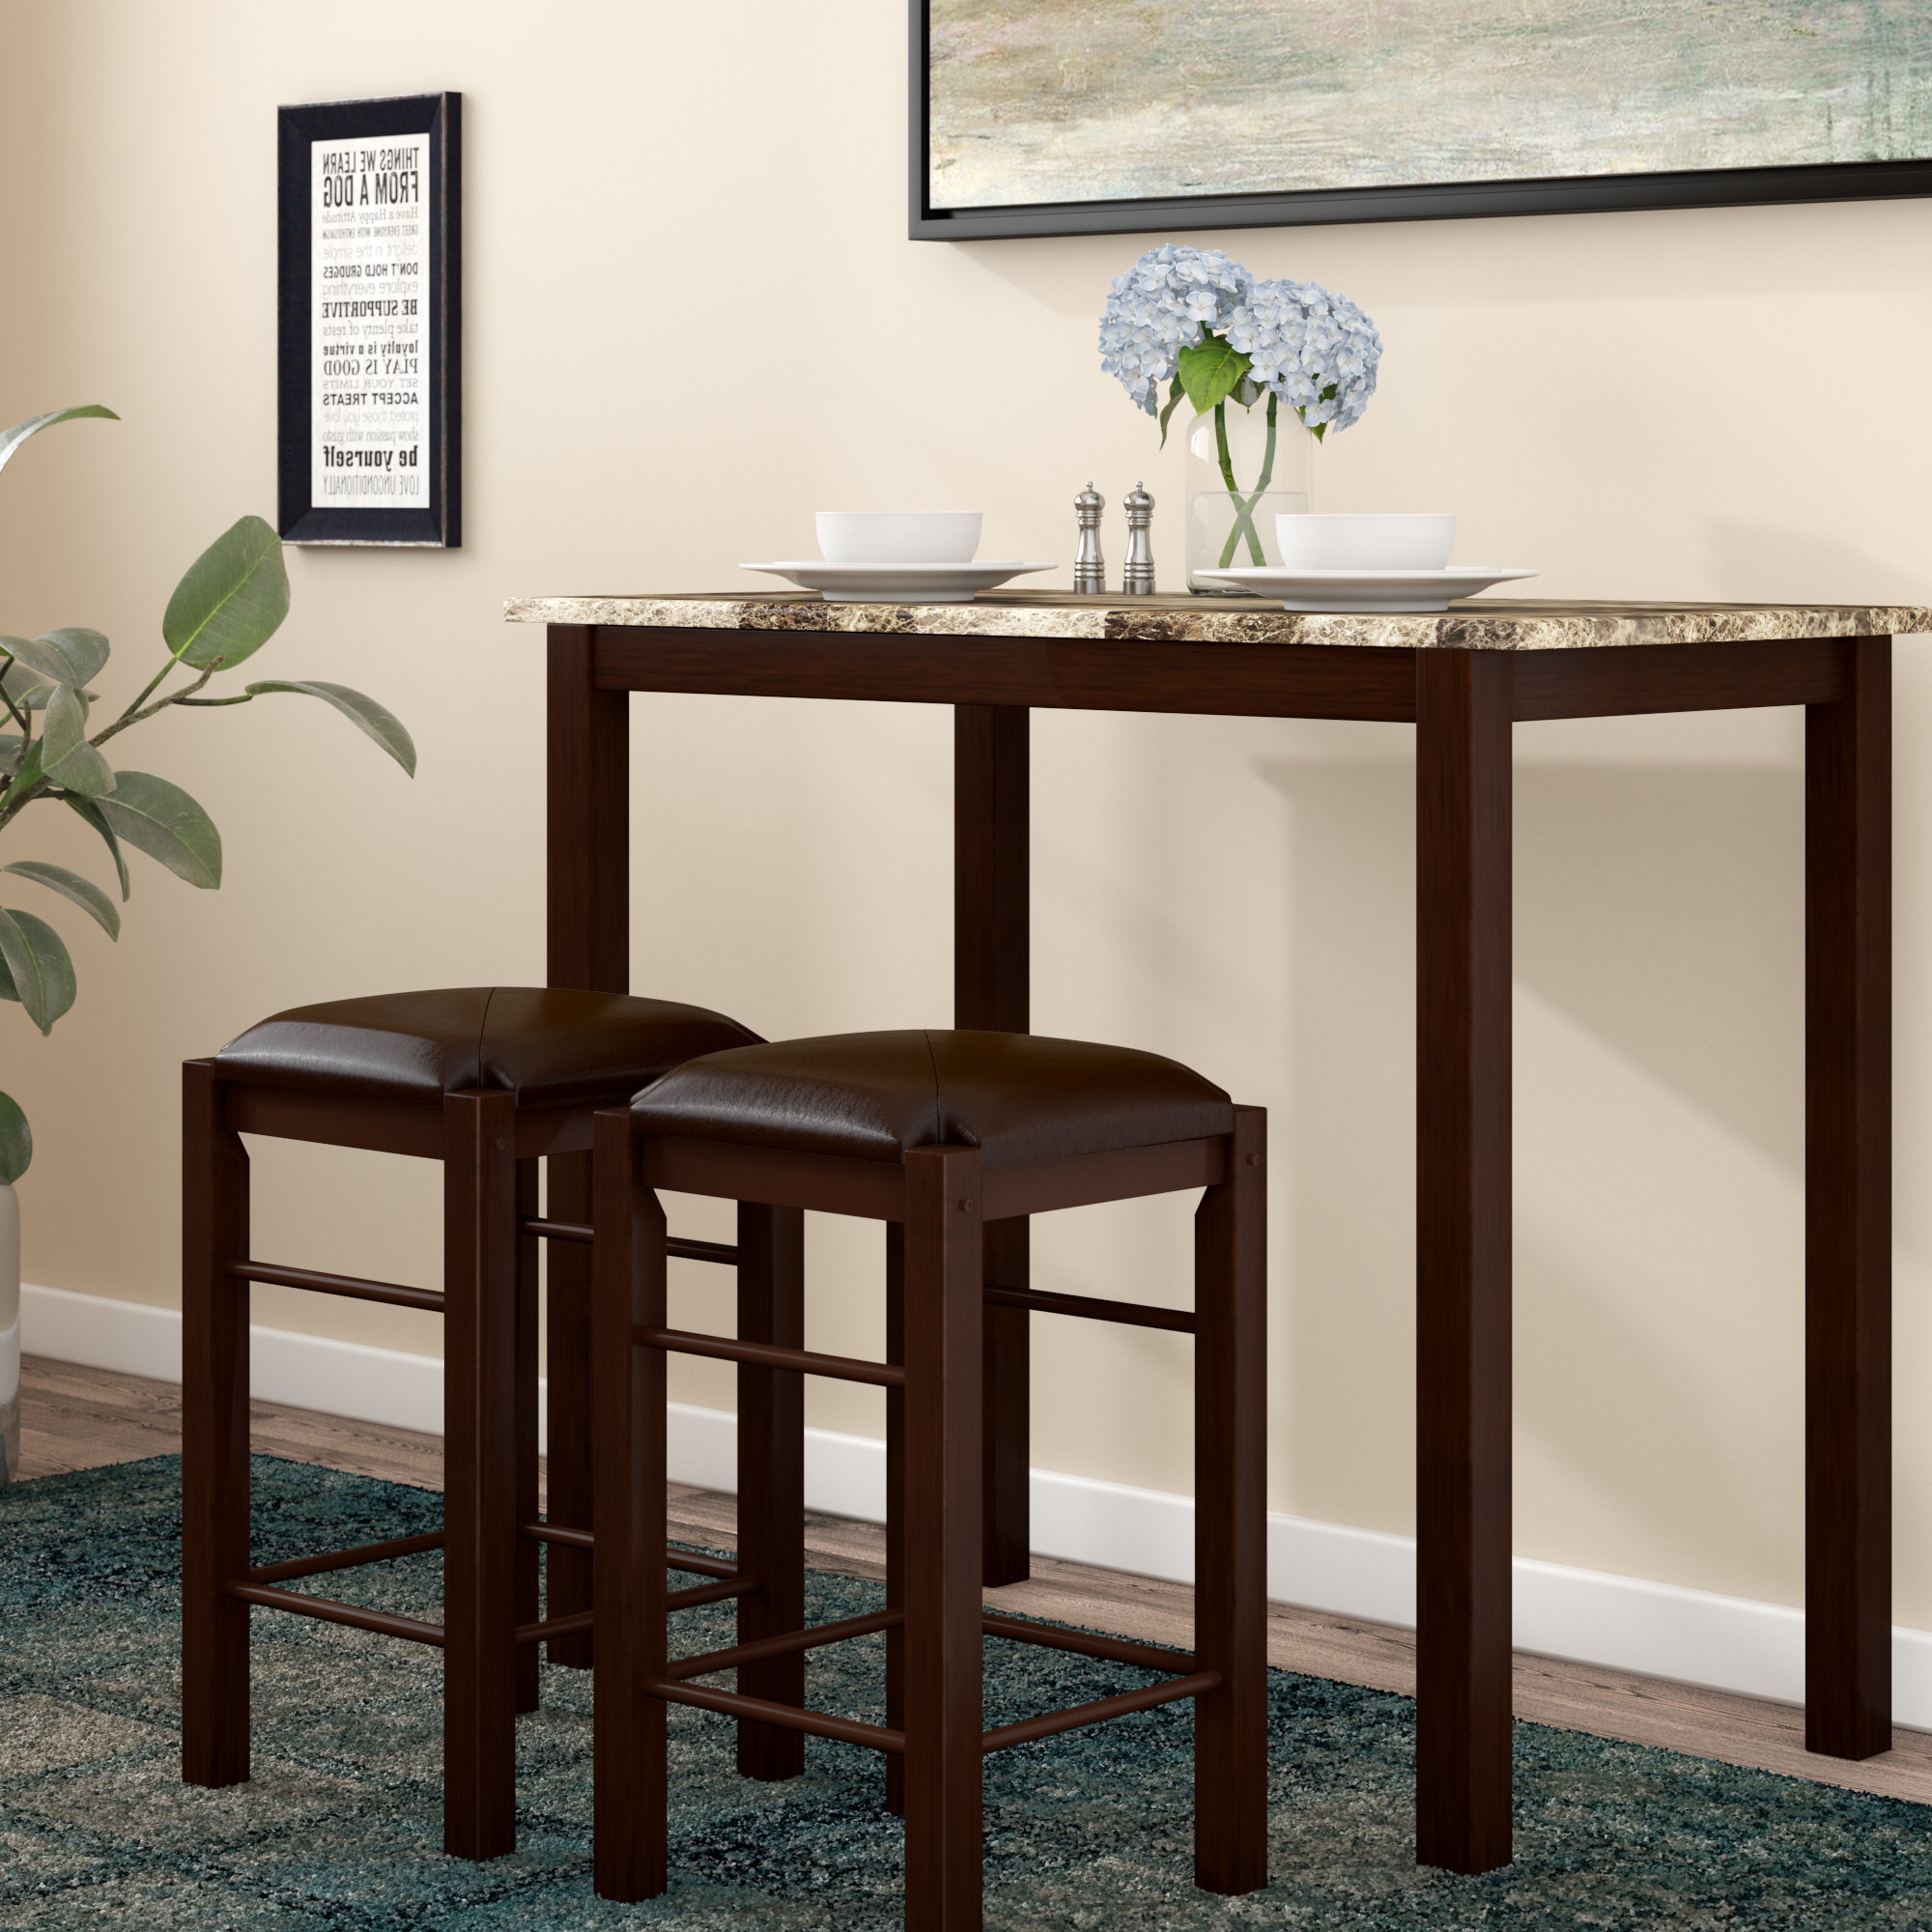 Most Current Winston Porter Penelope 3 Piece Counter Height Wood Dining Set With Regard To Mizpah 3 Piece Counter Height Dining Sets (View 12 of 20)